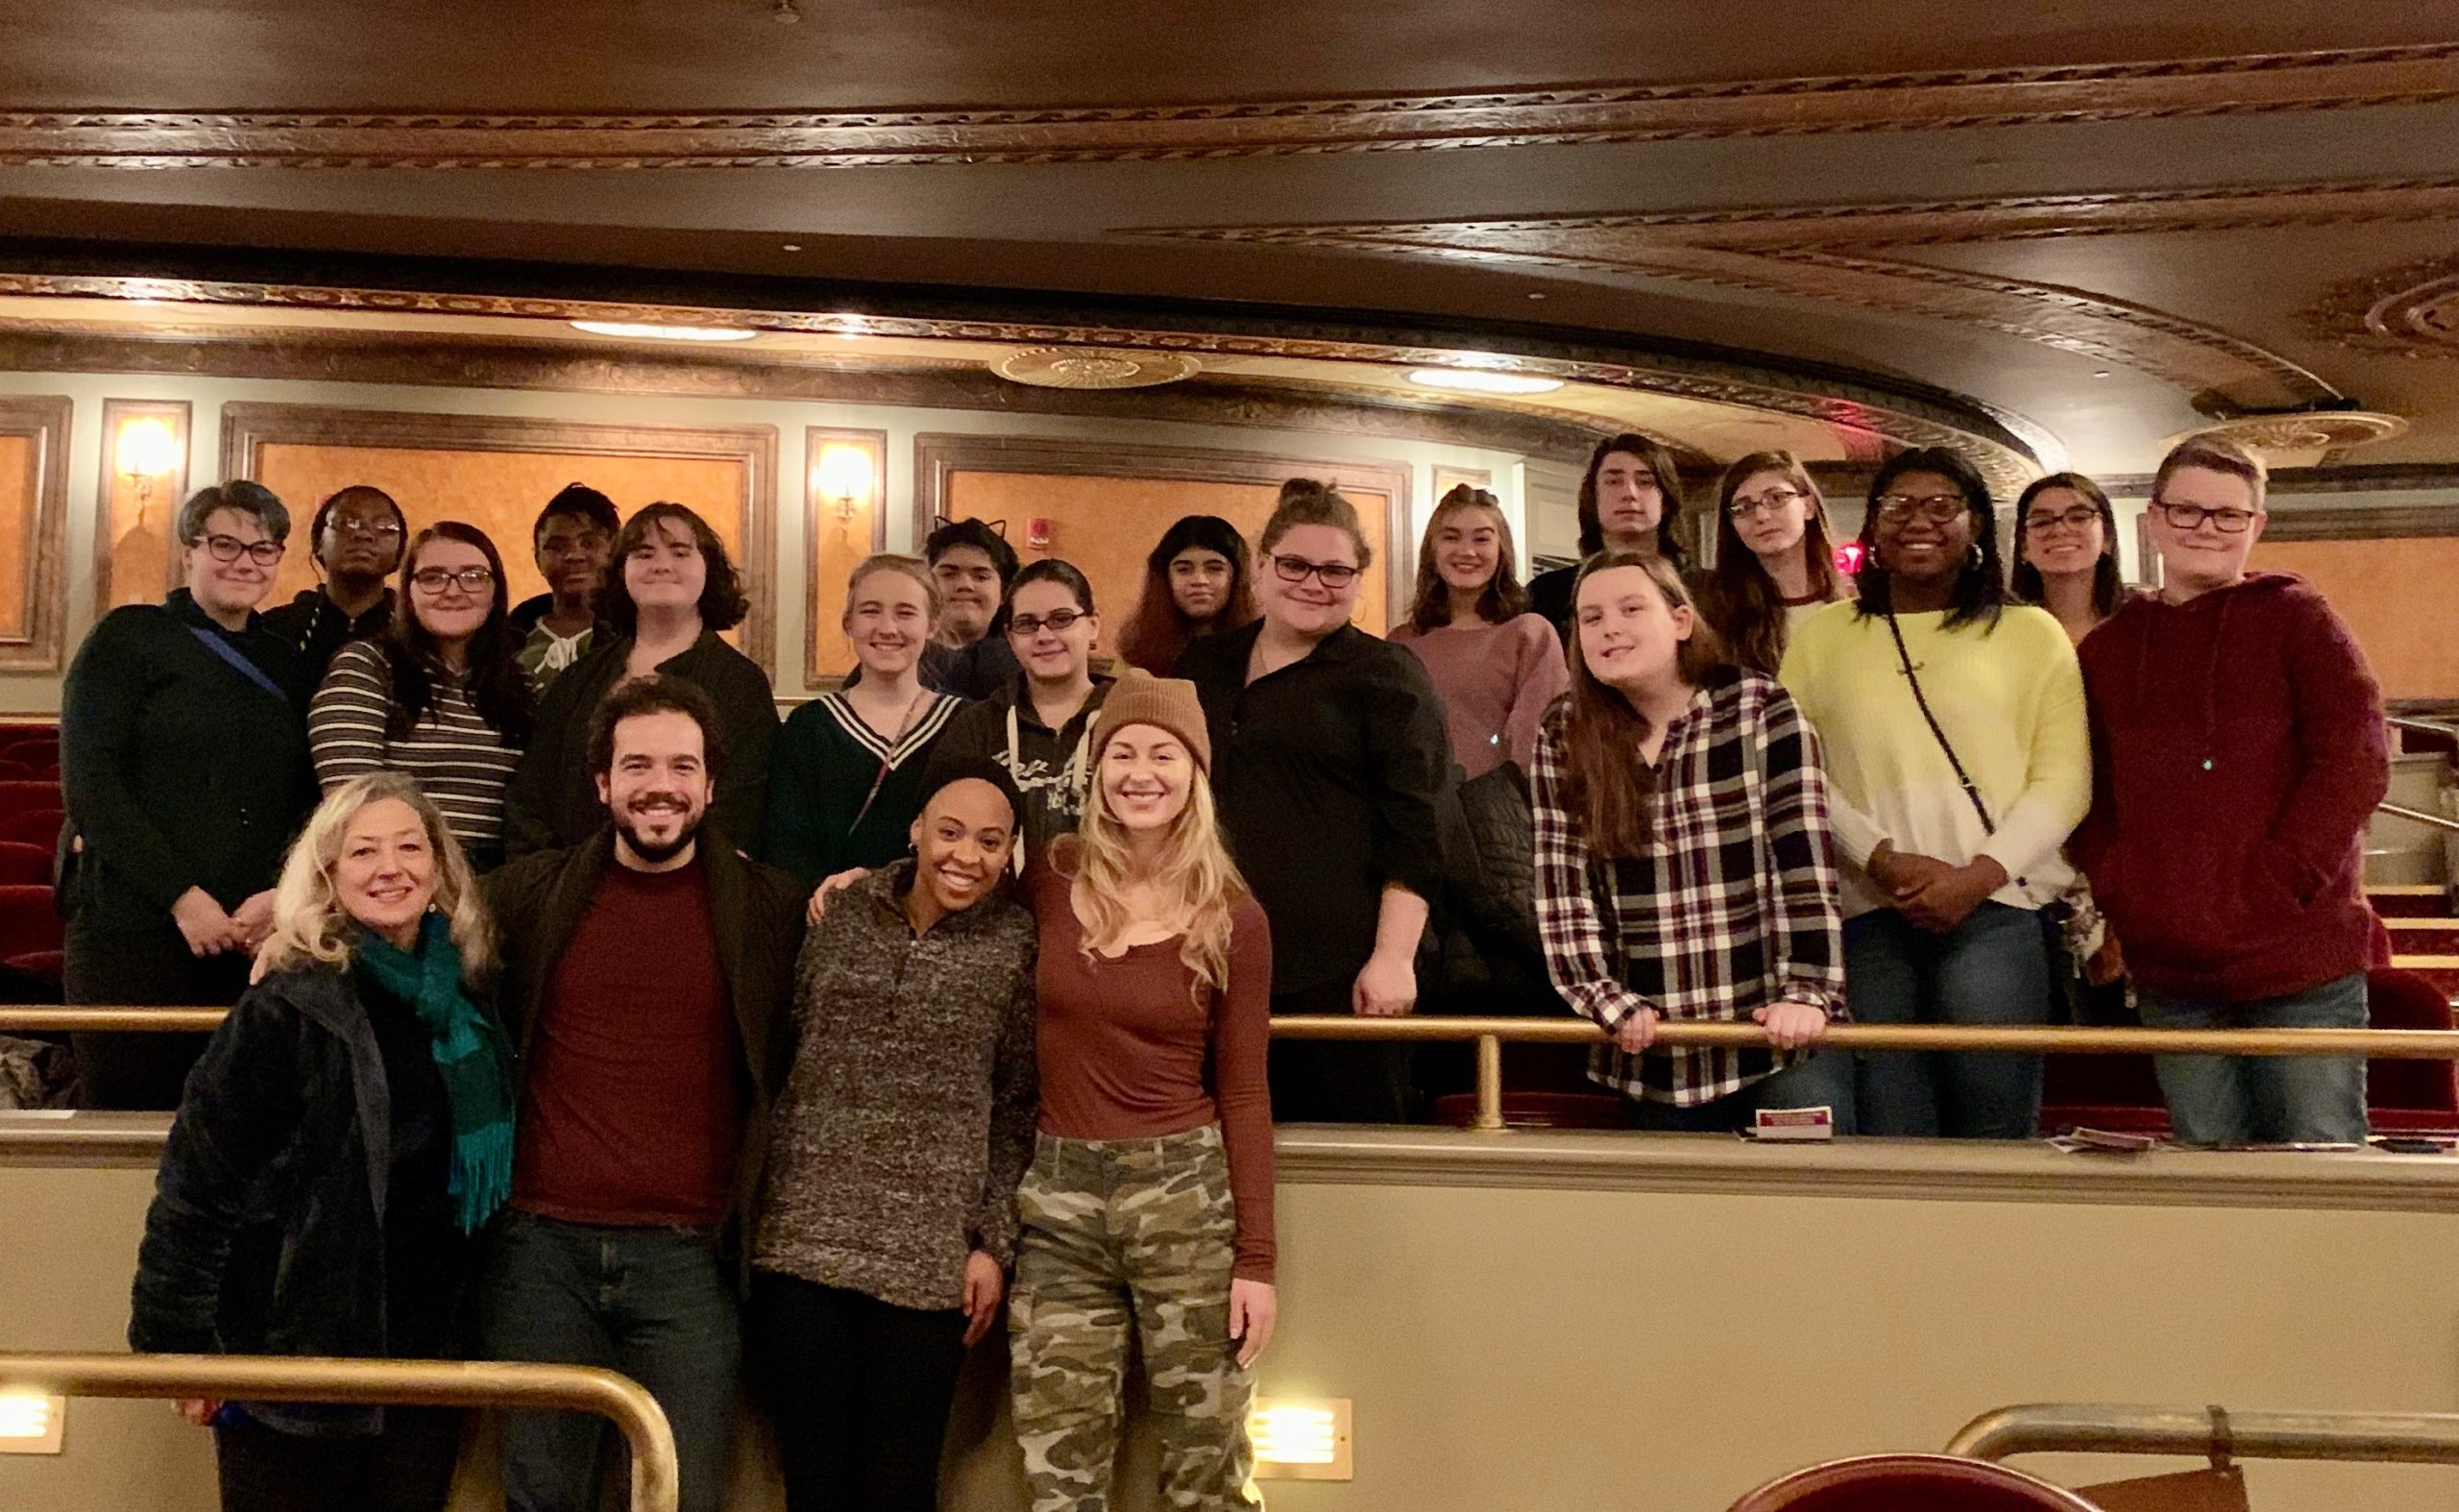 Les Miserables Cast at Palace Theater with After School Program